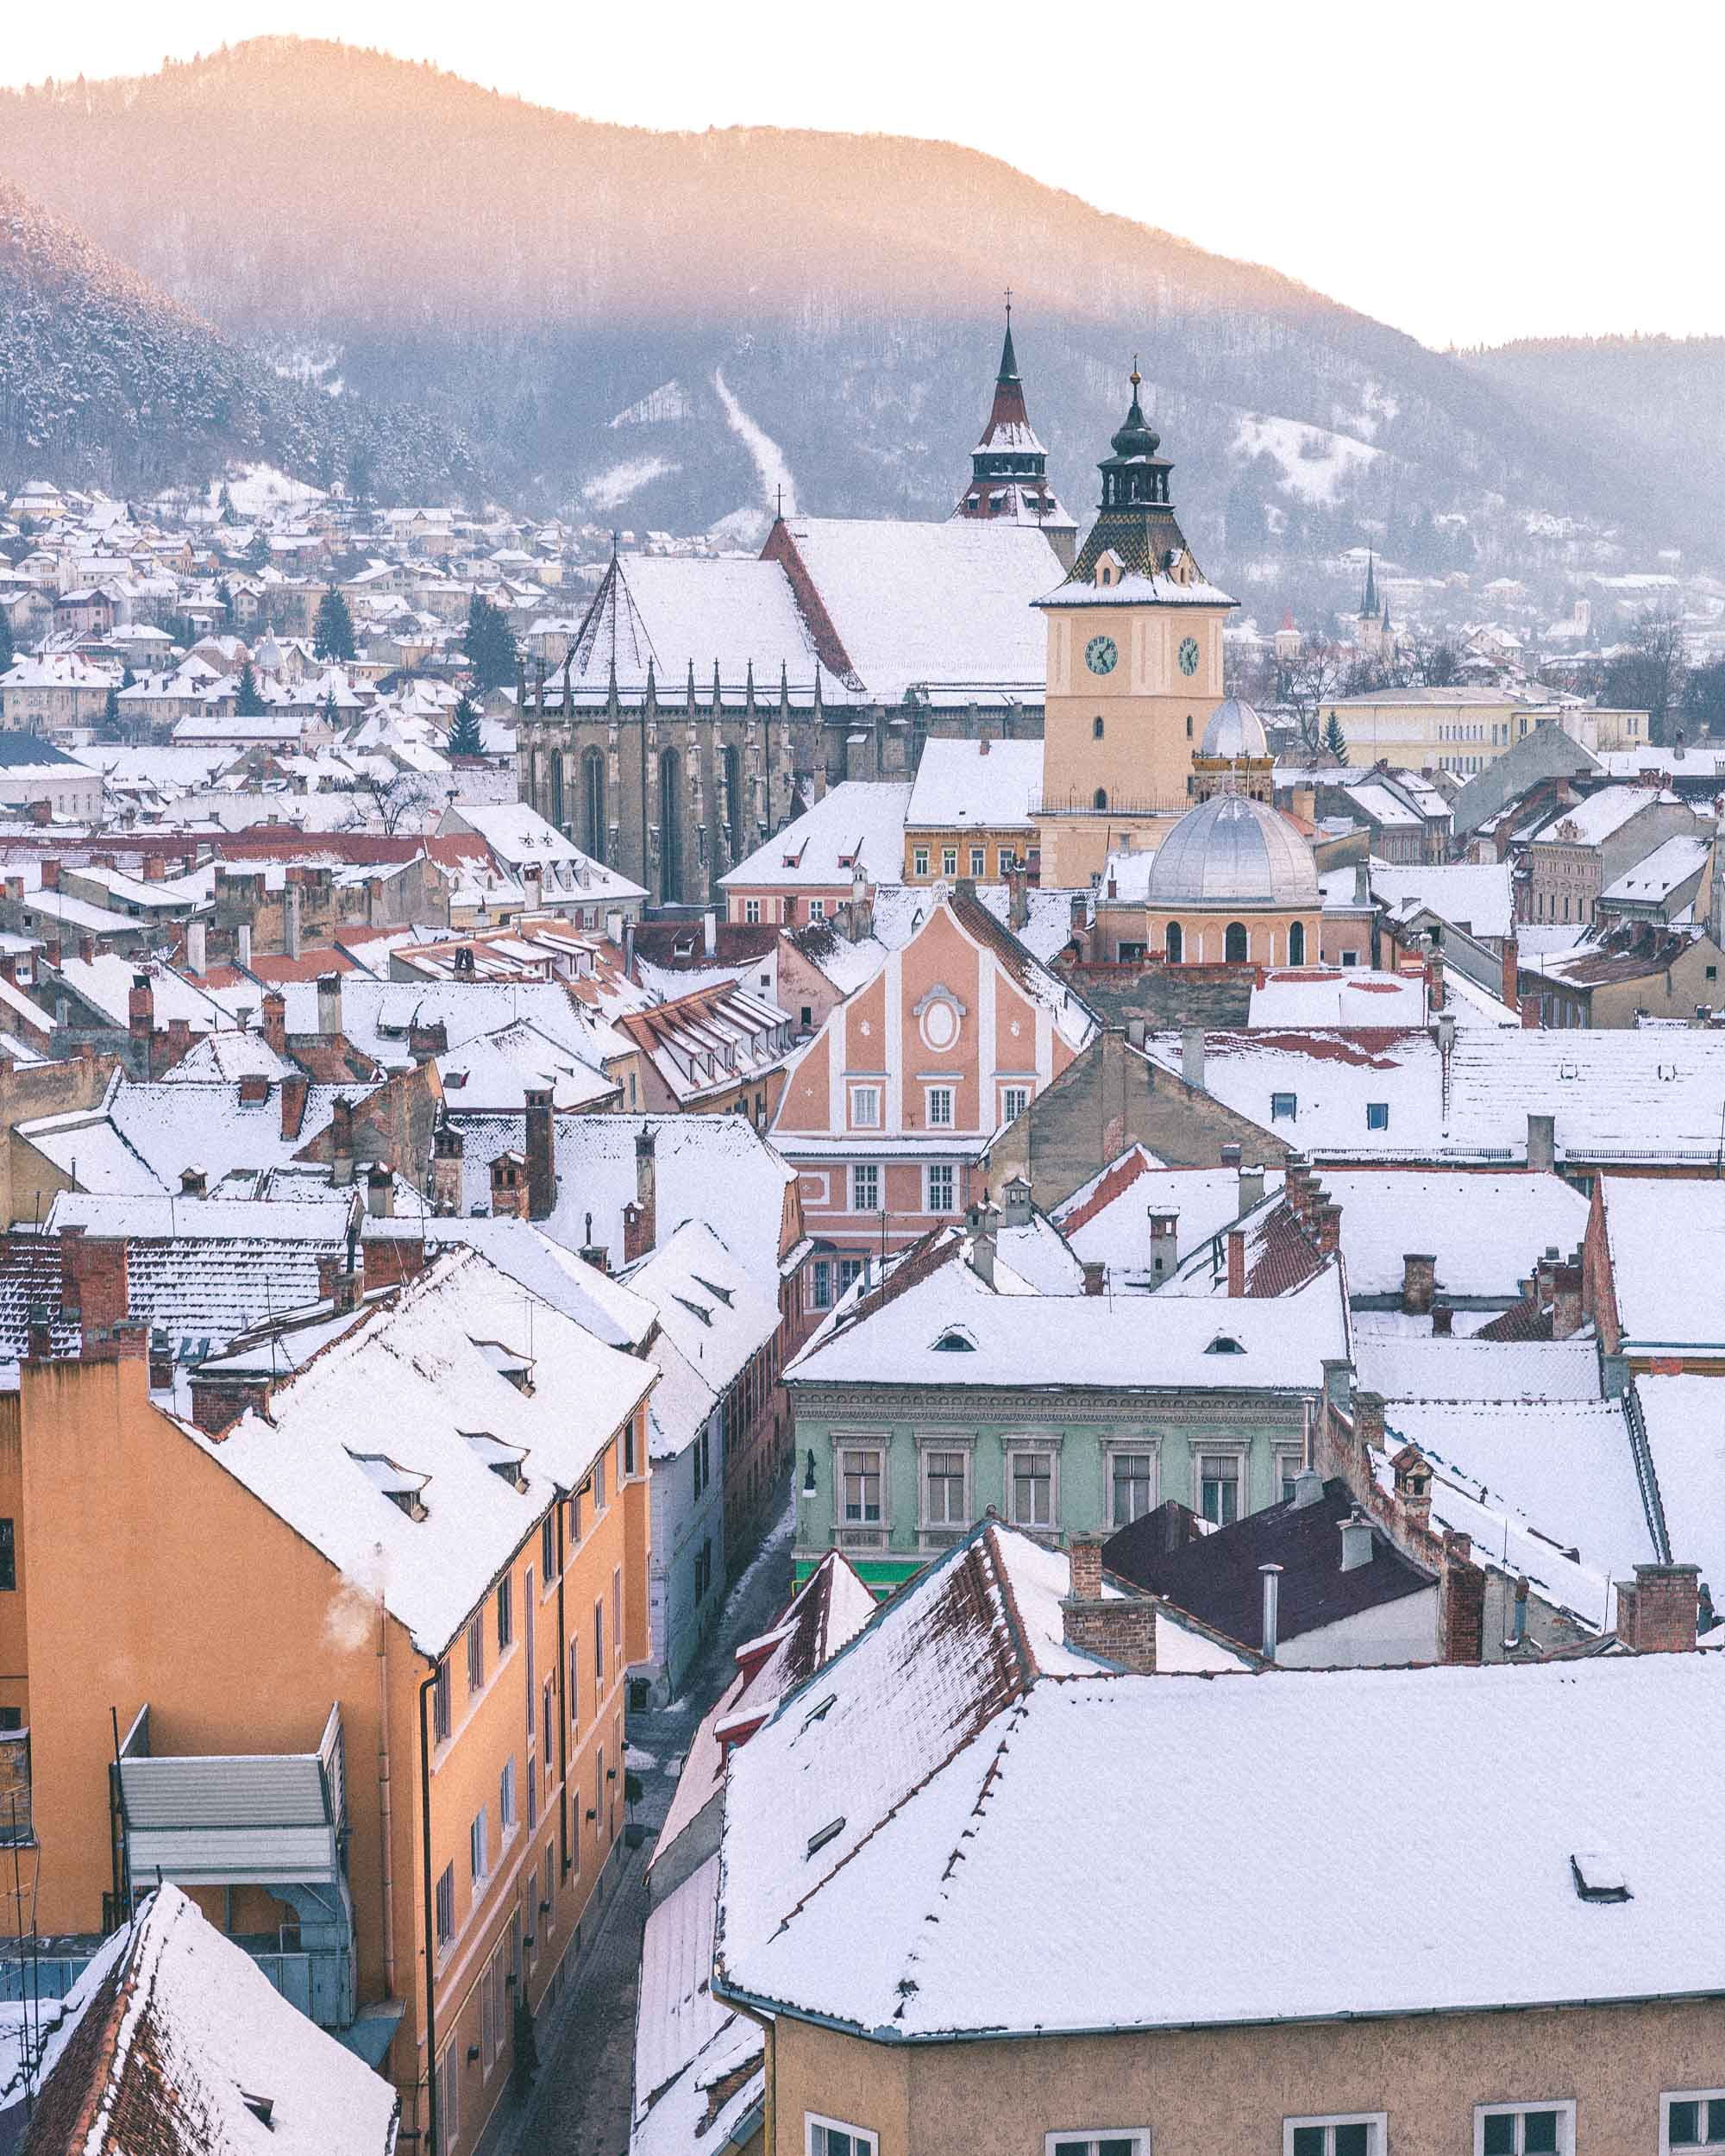 sunset views best place to watch sun go down pastel city of brasov poiana ski town church main square council wandering streets of tranyslvania romania